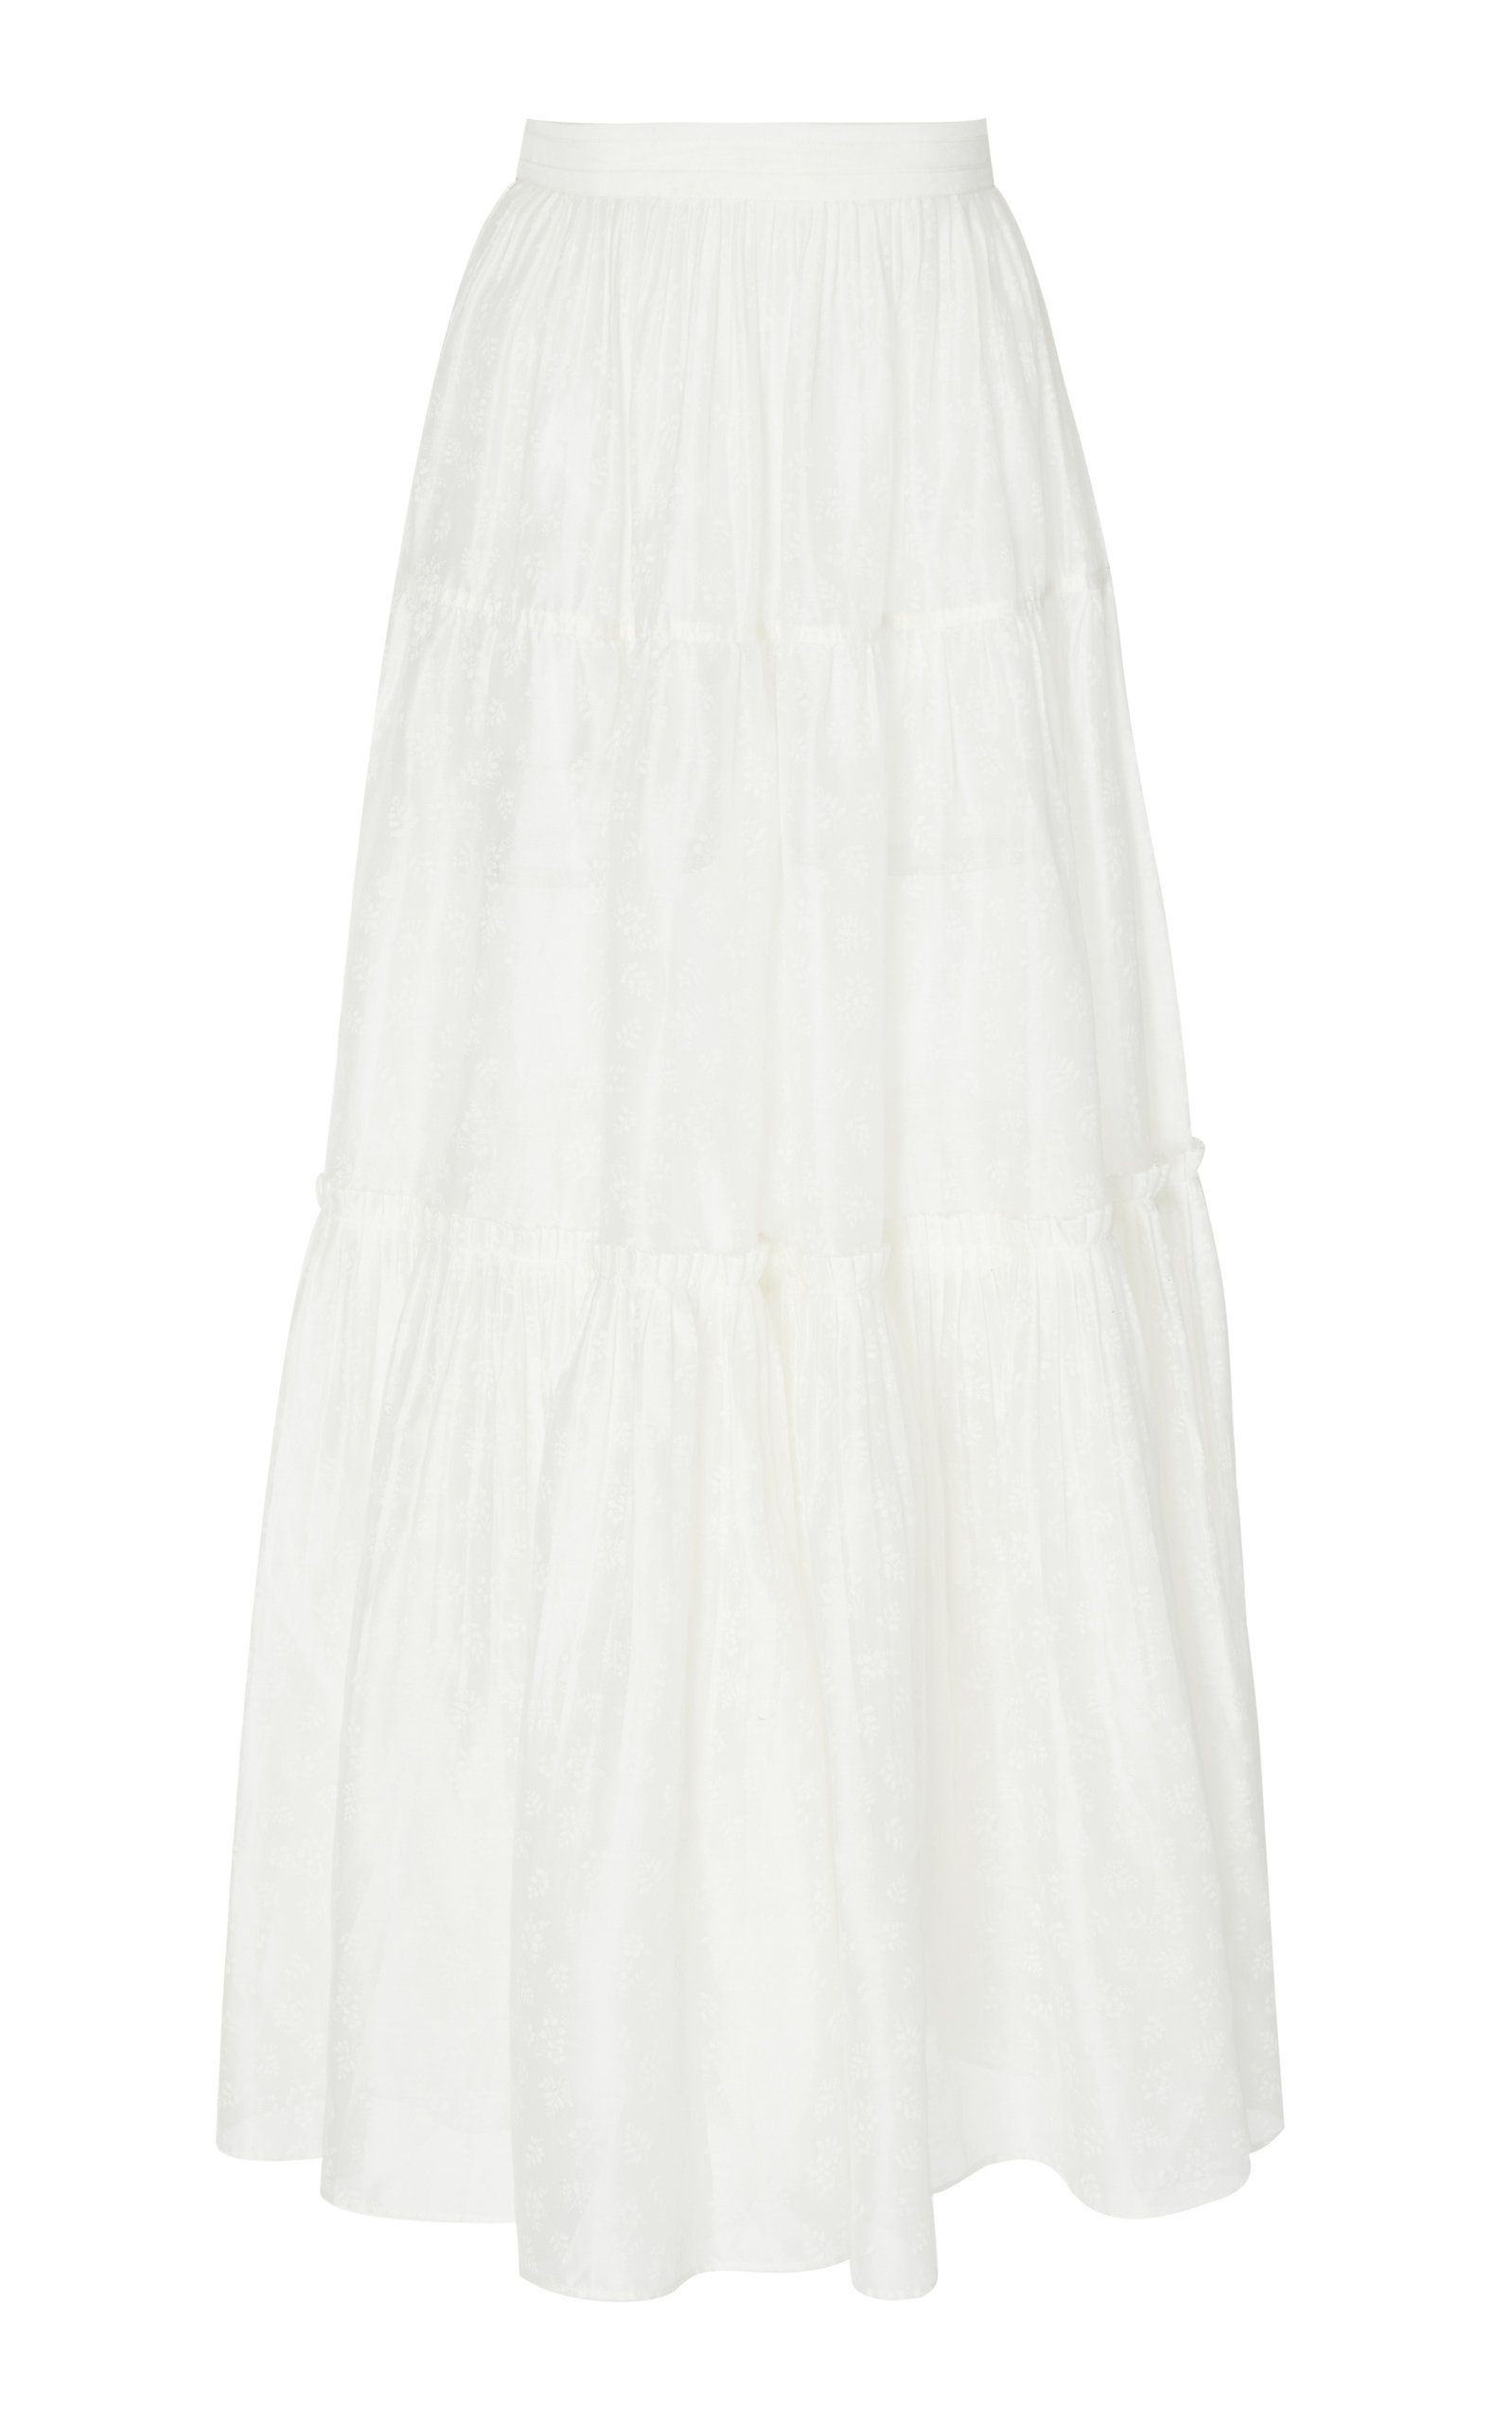 2deb57d44 Click product to zoom Ulla Johnson, Ruffles, Skirts, Cotton Skirt, Clothes,